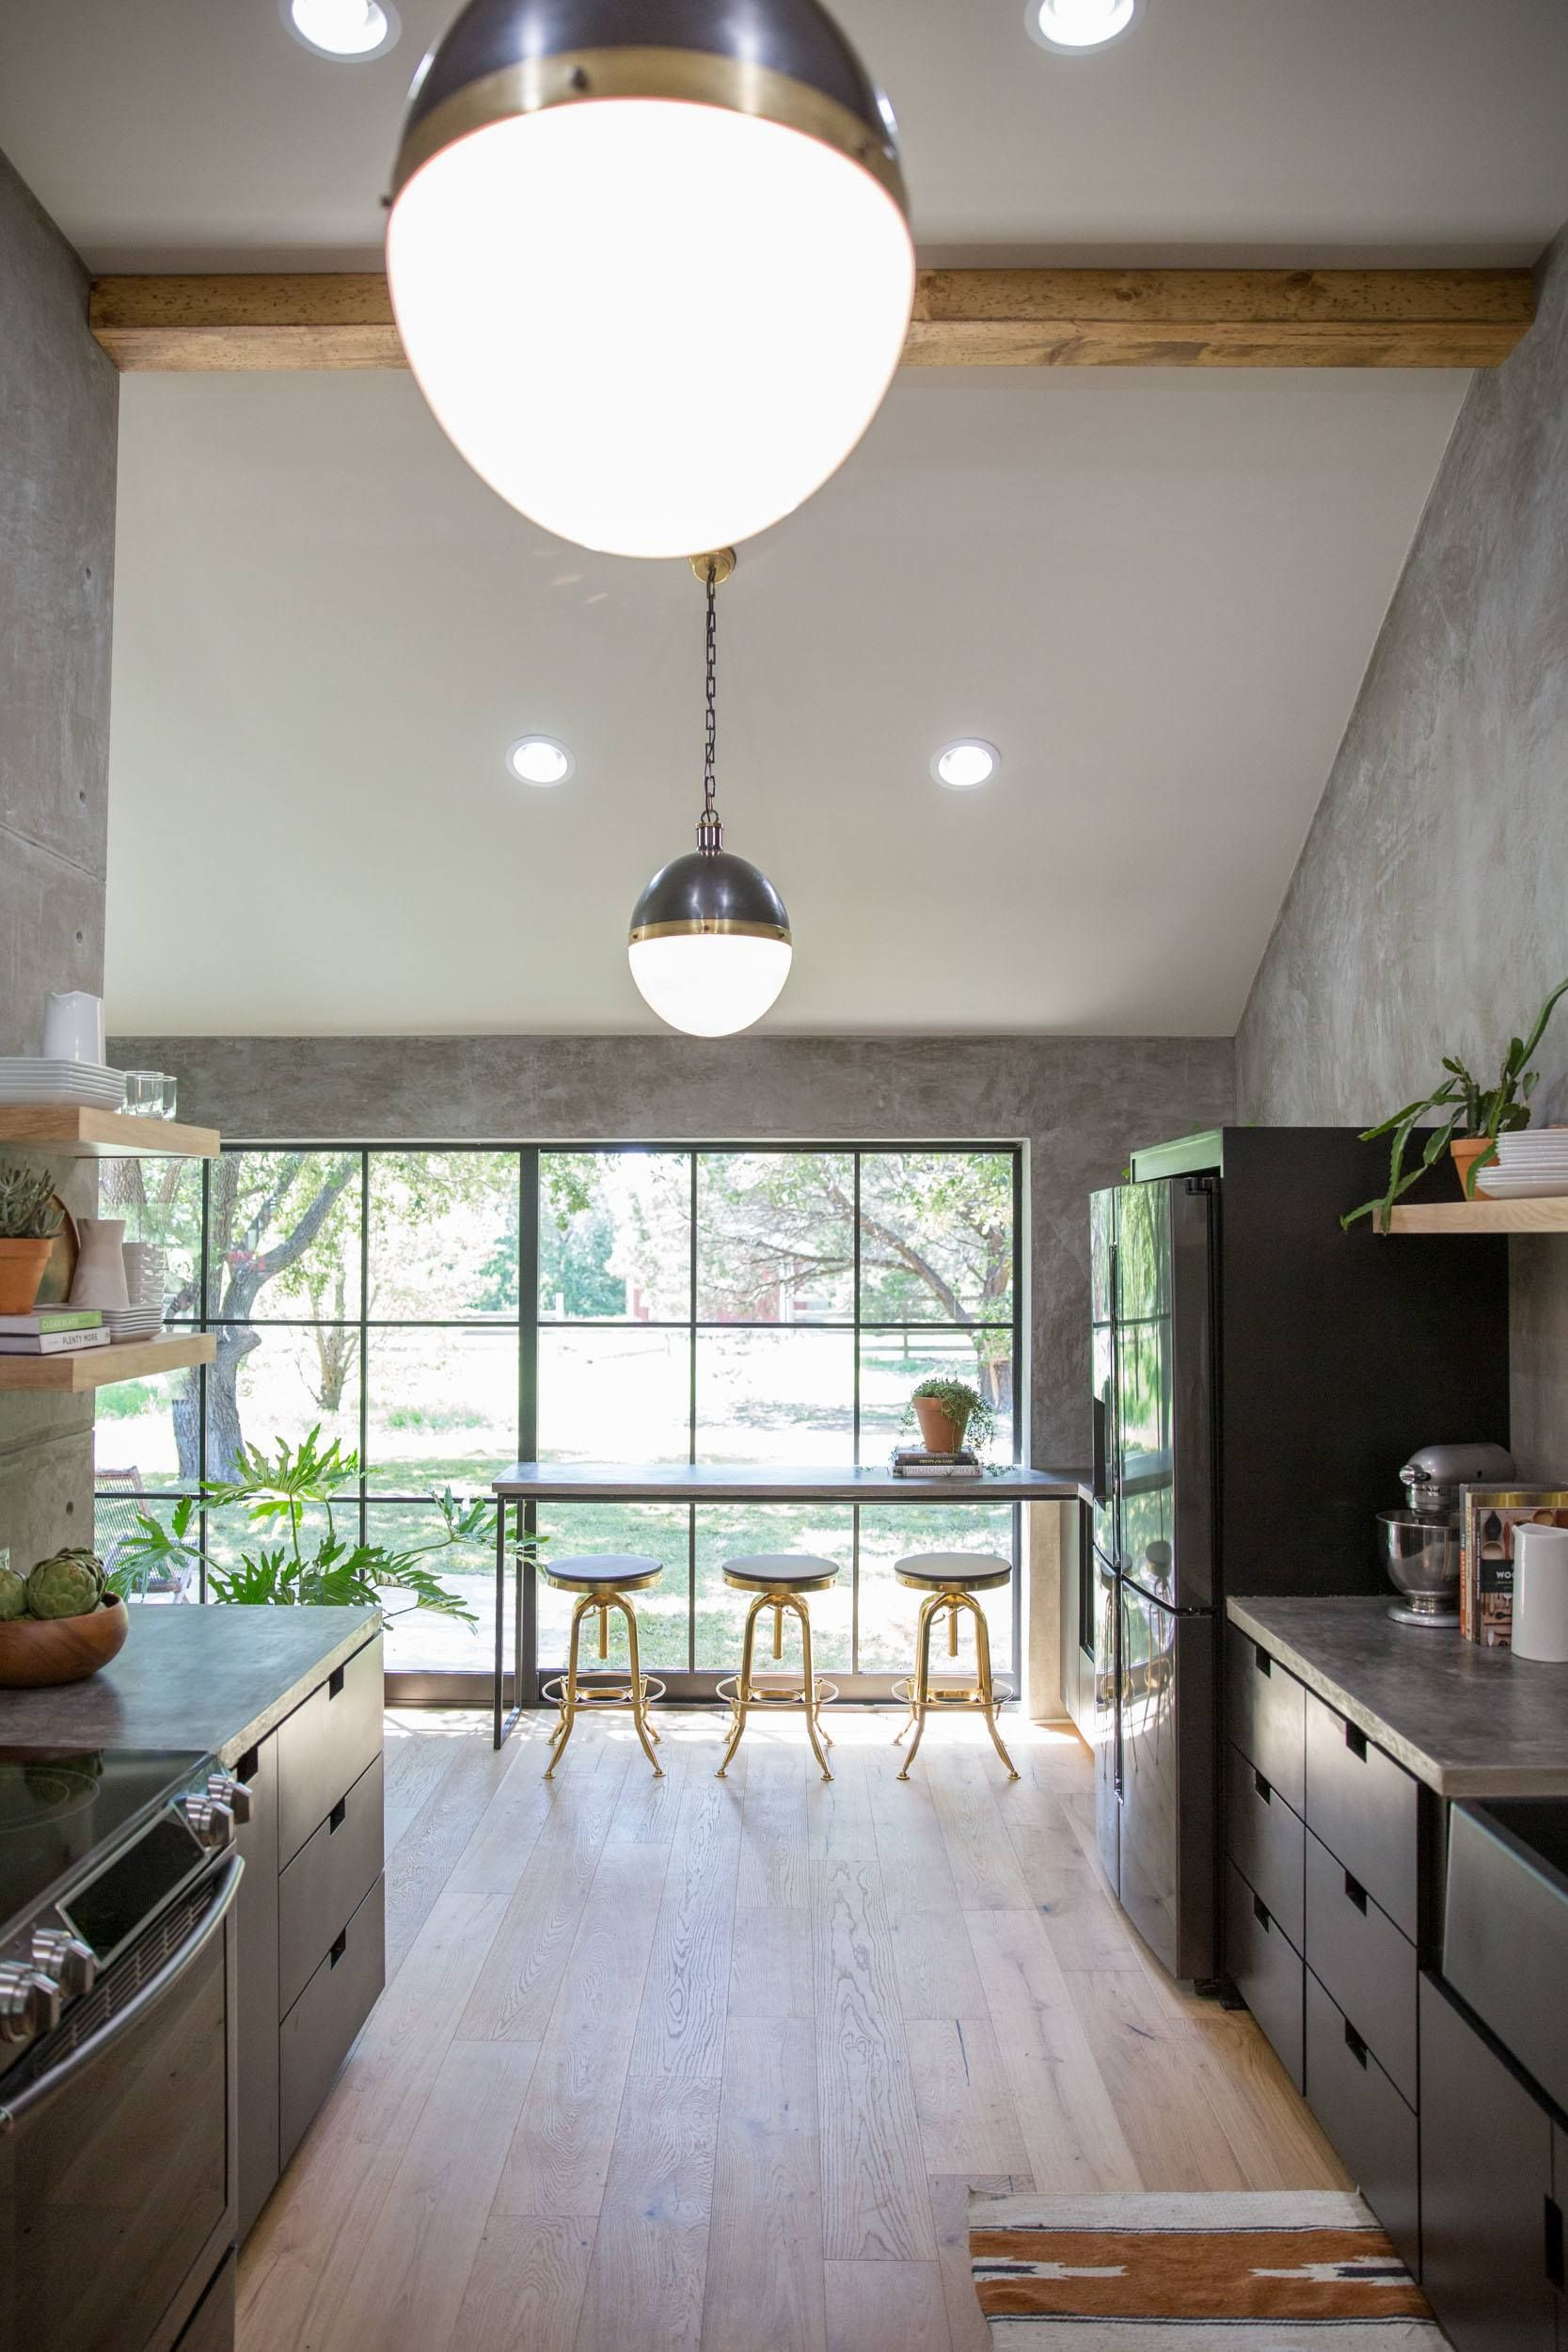 Id id ideas de cocina de los pa ses de bricolaje - A Few Brass Accents Added Throughout The Kitchen Made For A Fun Modern Addition To